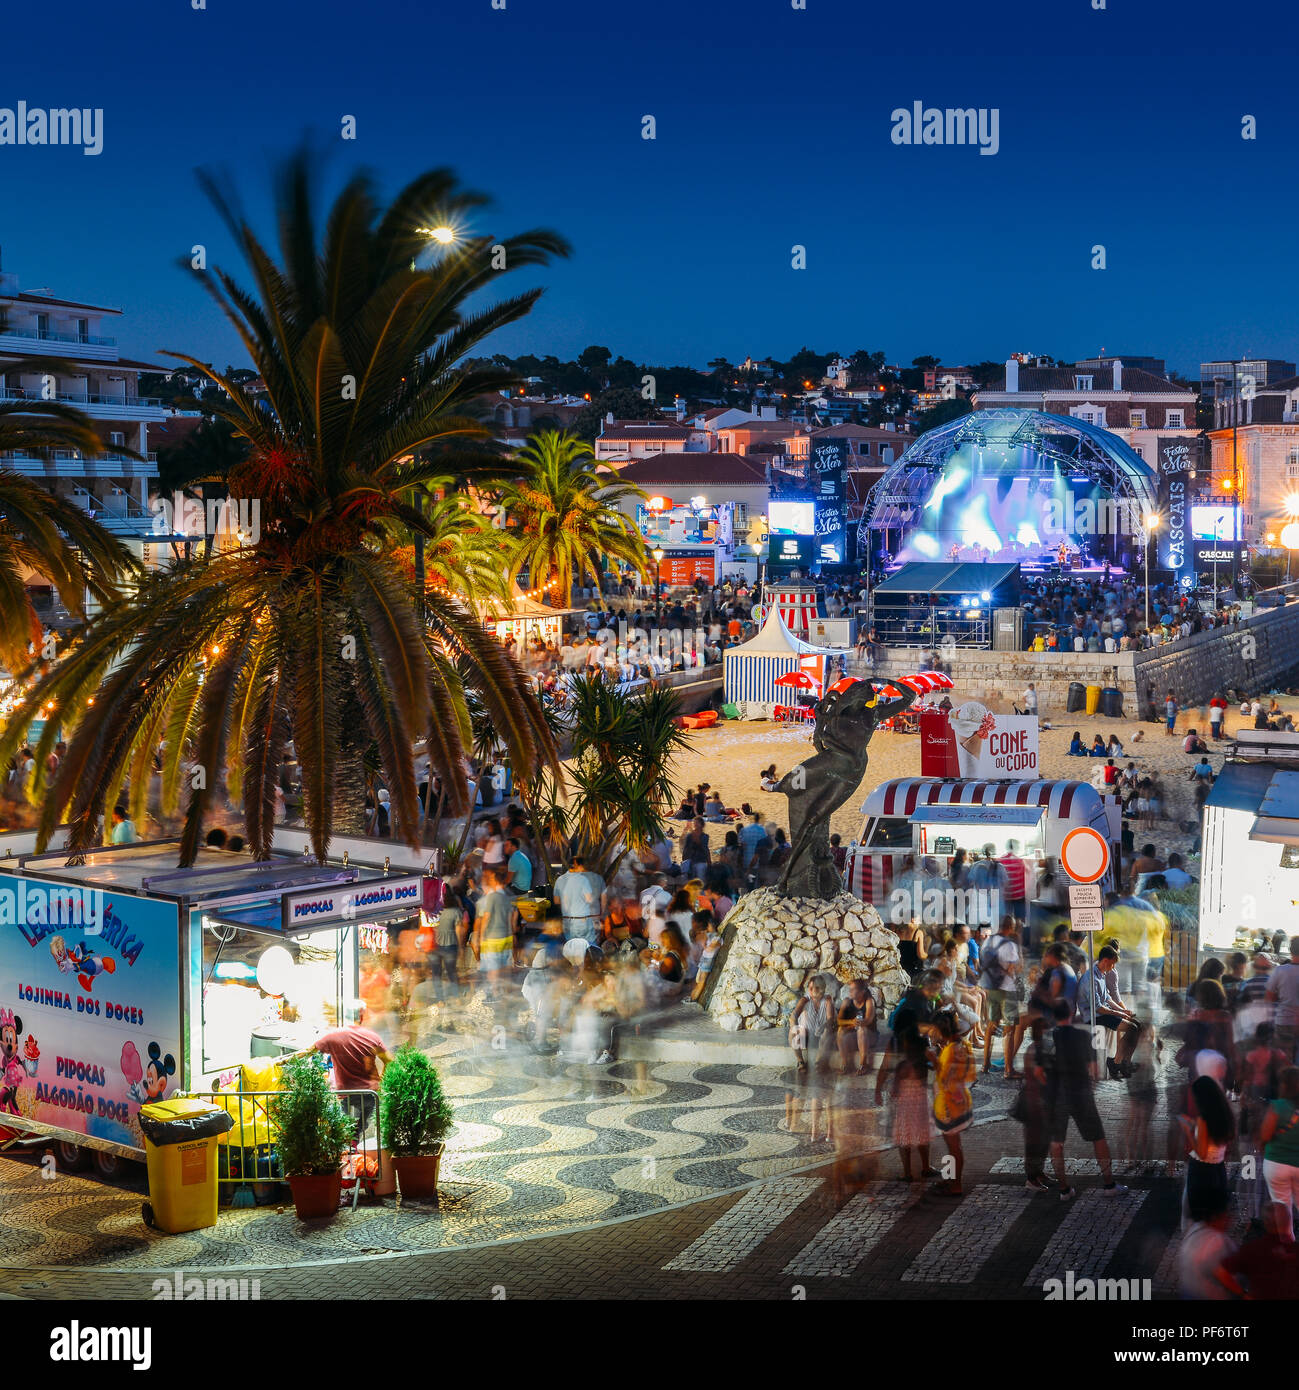 cascais-portugal-august-19-2018-between-august-17-and-26-2018-praia-do-ribeiro-in-cascais-is-hosting-the-festas-do-mar-music-festival-festival-featuring-famous-portuguese-musicians-as-well-as-brazilian-and-african-the-festival-is-expected-to-attract-500000-spectators-for-a-lively-atmosphere-complete-with-food-trucks-and-activities-for-all-ages-on-the-last-day-organisers-have-planned-a-fireworks-display-overlooking-the-cascais-bay-credit-alexandre-rotenbergalamy-live-news-PF6T6T.jpg